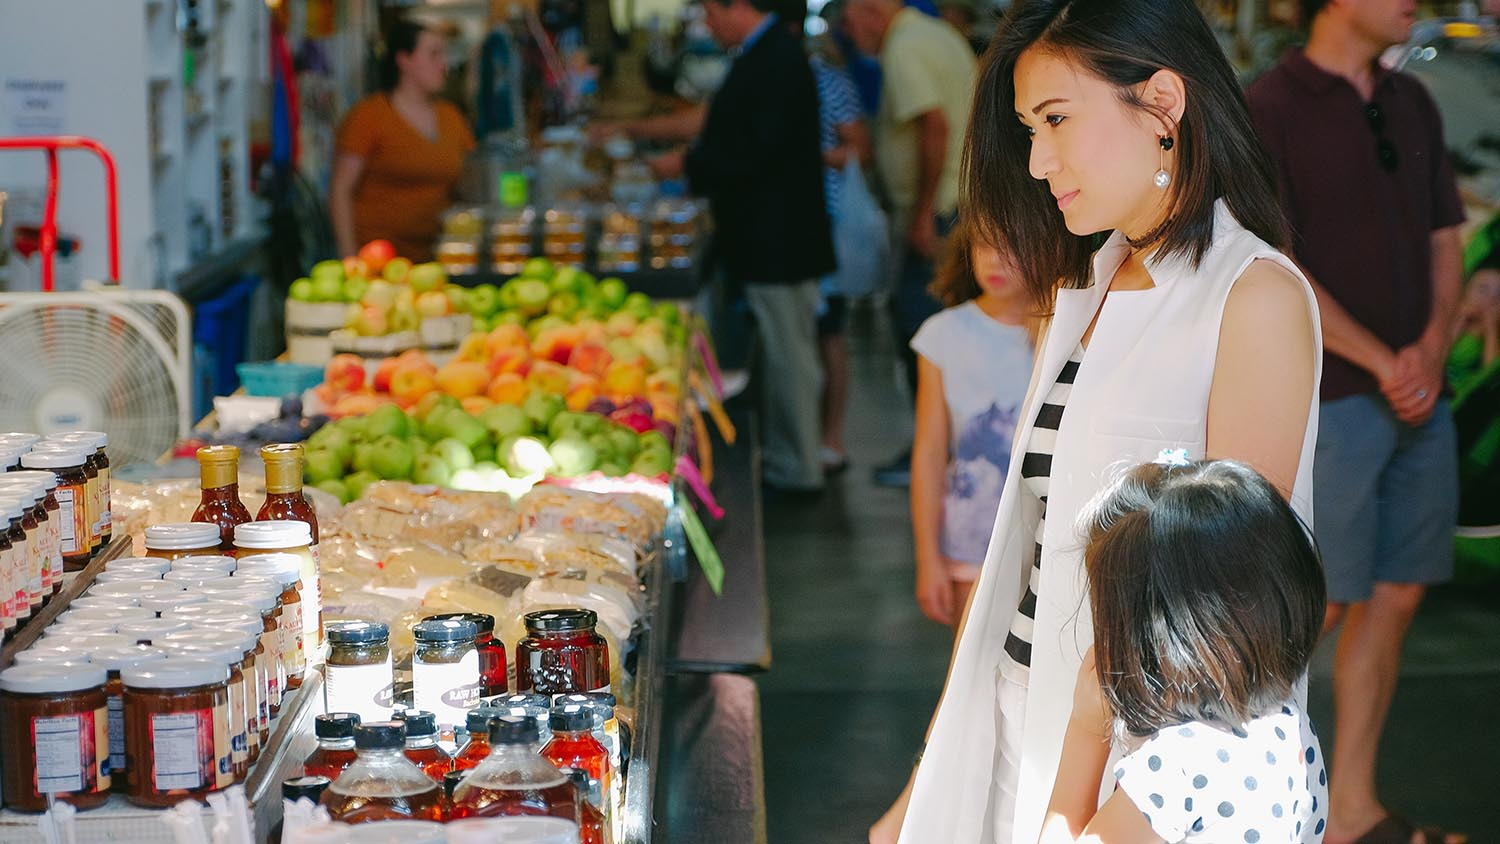 A young woman and her child shopping at a farmers market